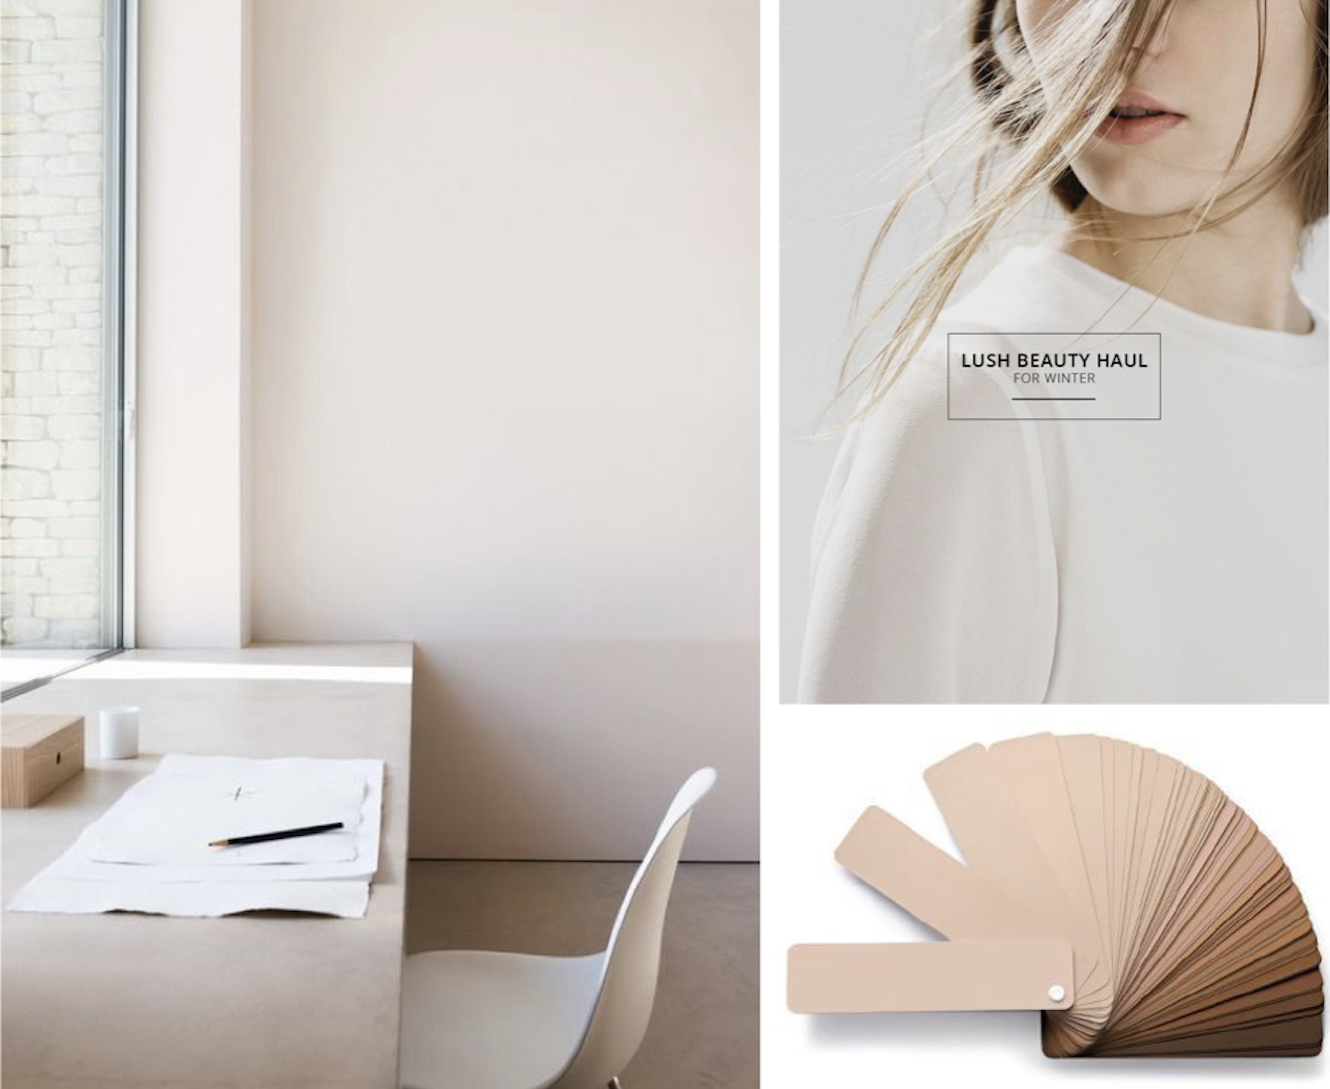 New colour vibe: Beigebrown + Blush